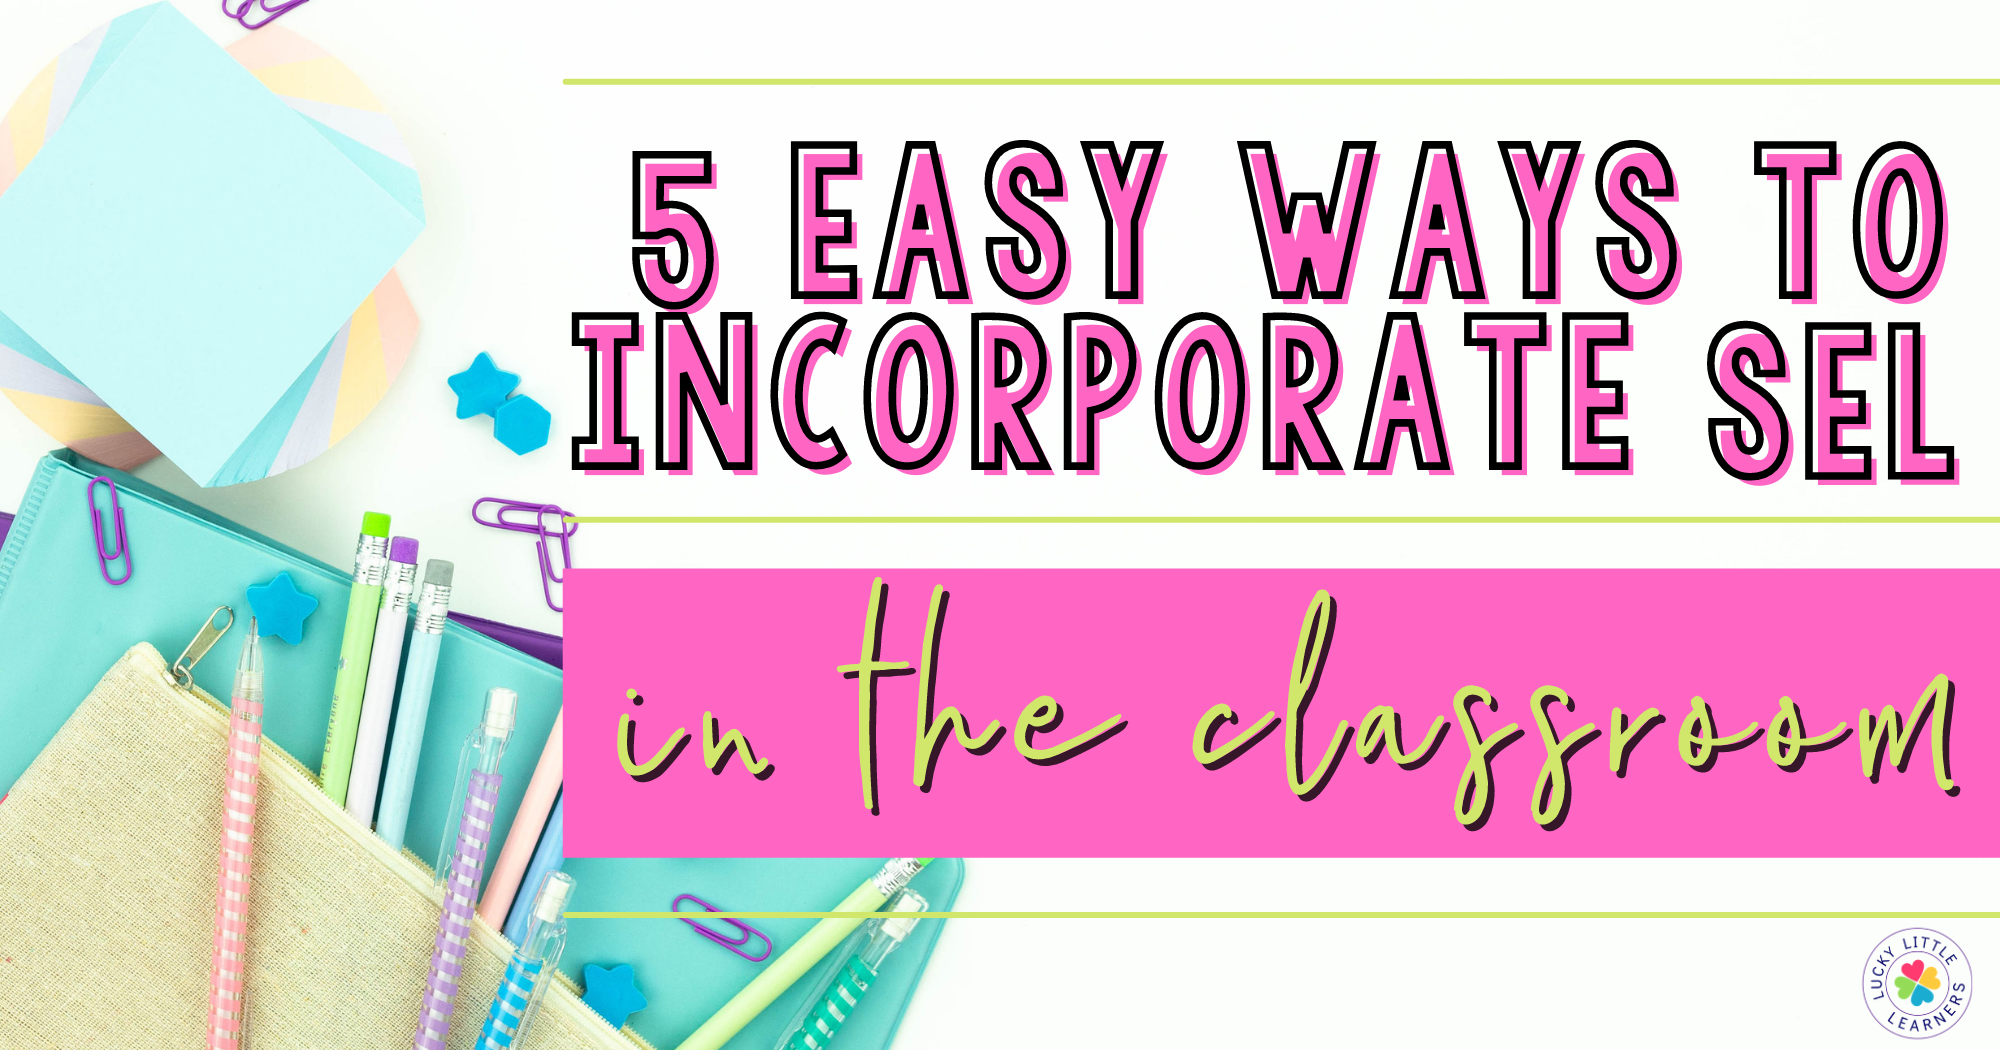 5 Easy Ways to Incorporate Social Emotional Learning in the Classroom